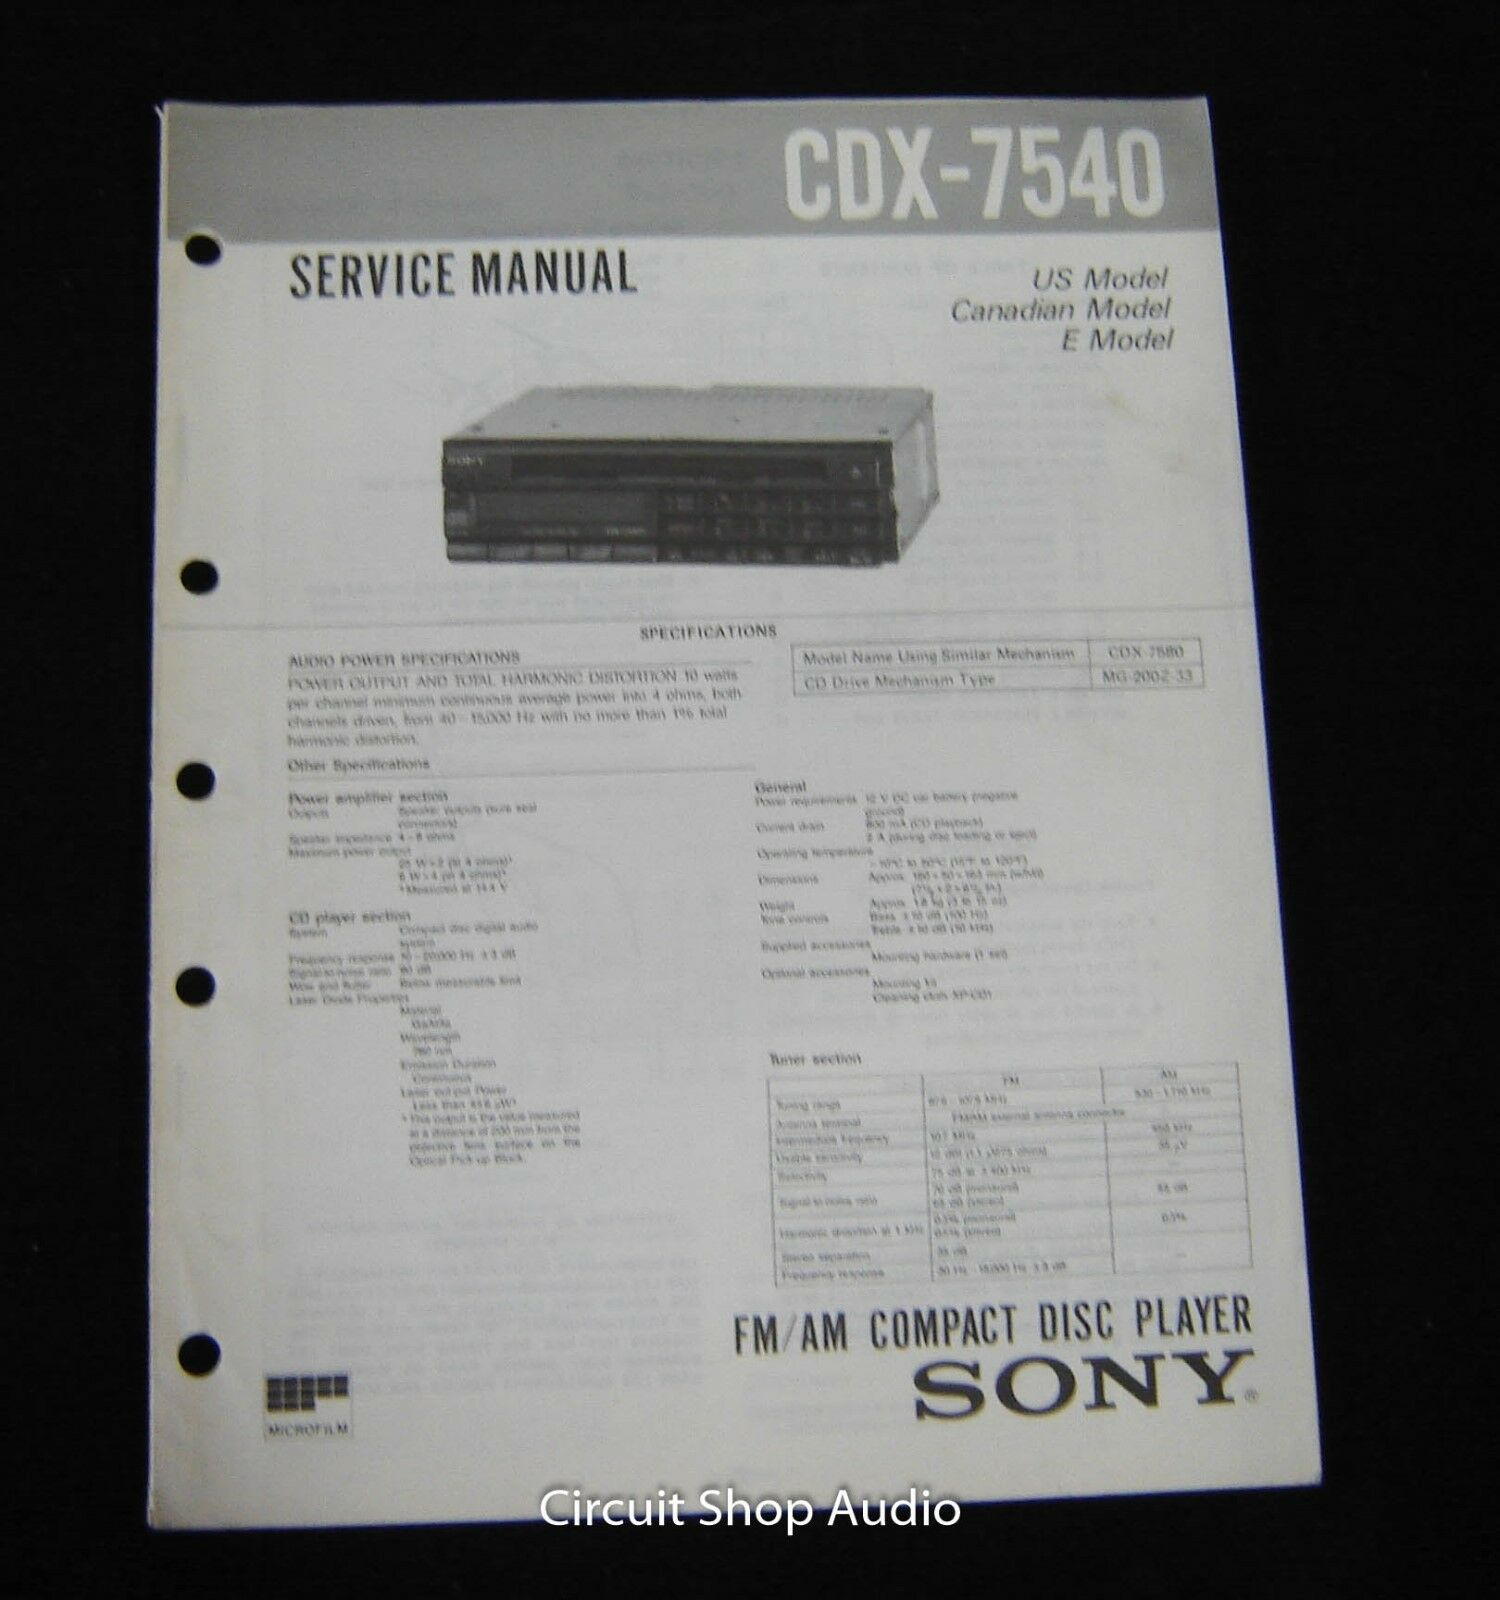 Original Sony CDX-7540 FM/AM CD Player Service Manual 1 of 1Only 1  available See More